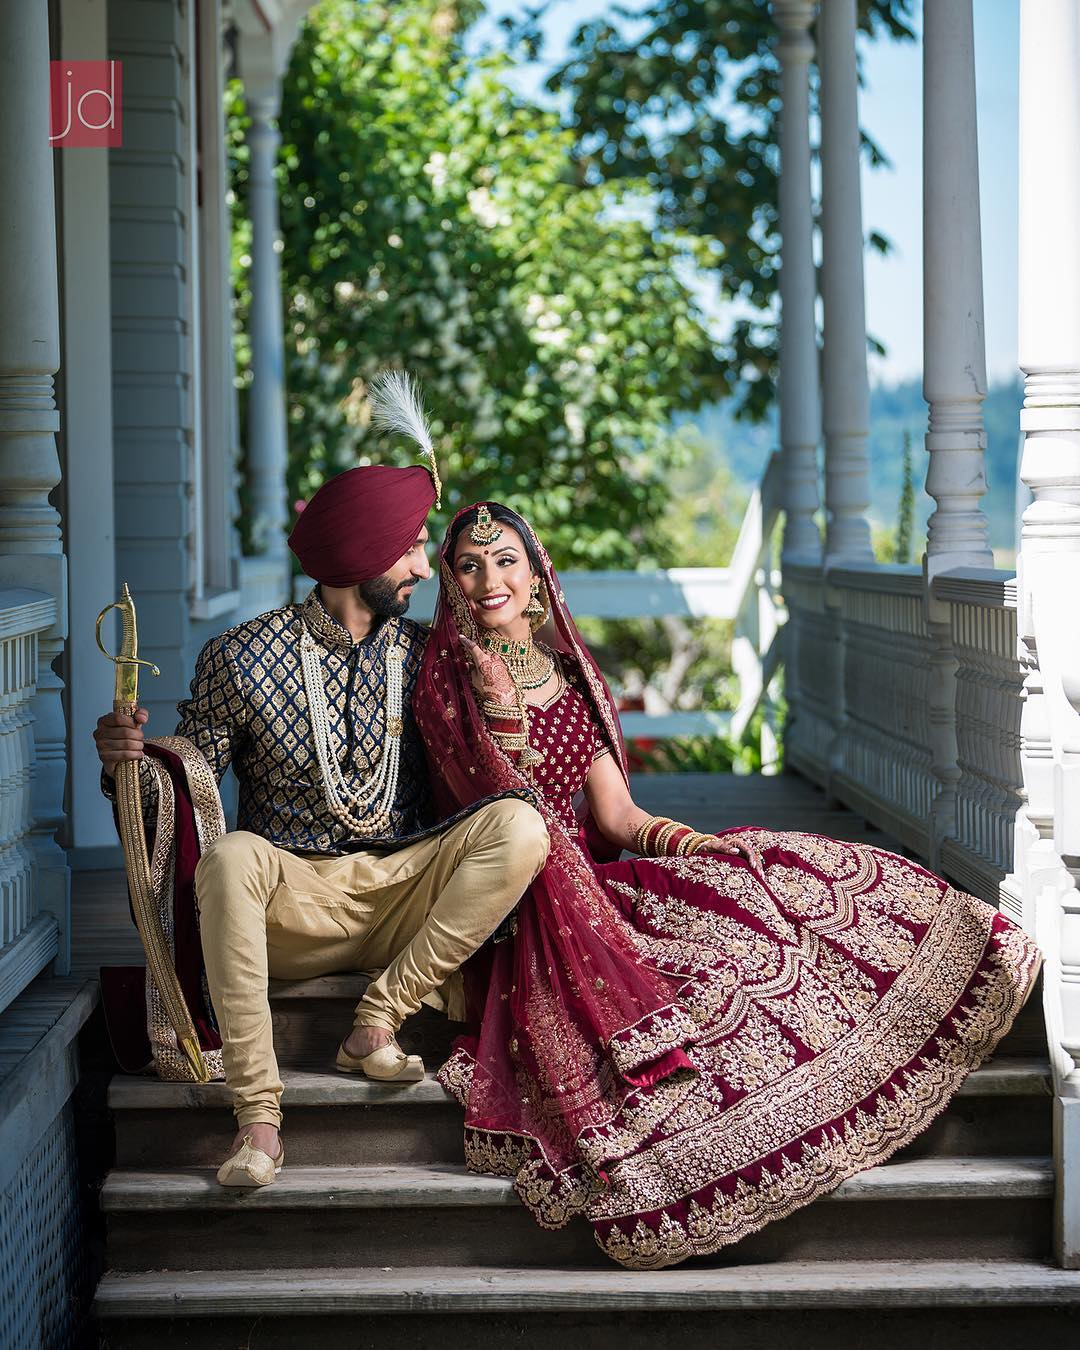 Indian wedding photographers in Canada, indian weddings, wedding photography, Canada, indian weddings in Canada, couple portrait, groom outfit, bridal outfit, indian bride, indian groom, bridal lehenga, JD Photos studios